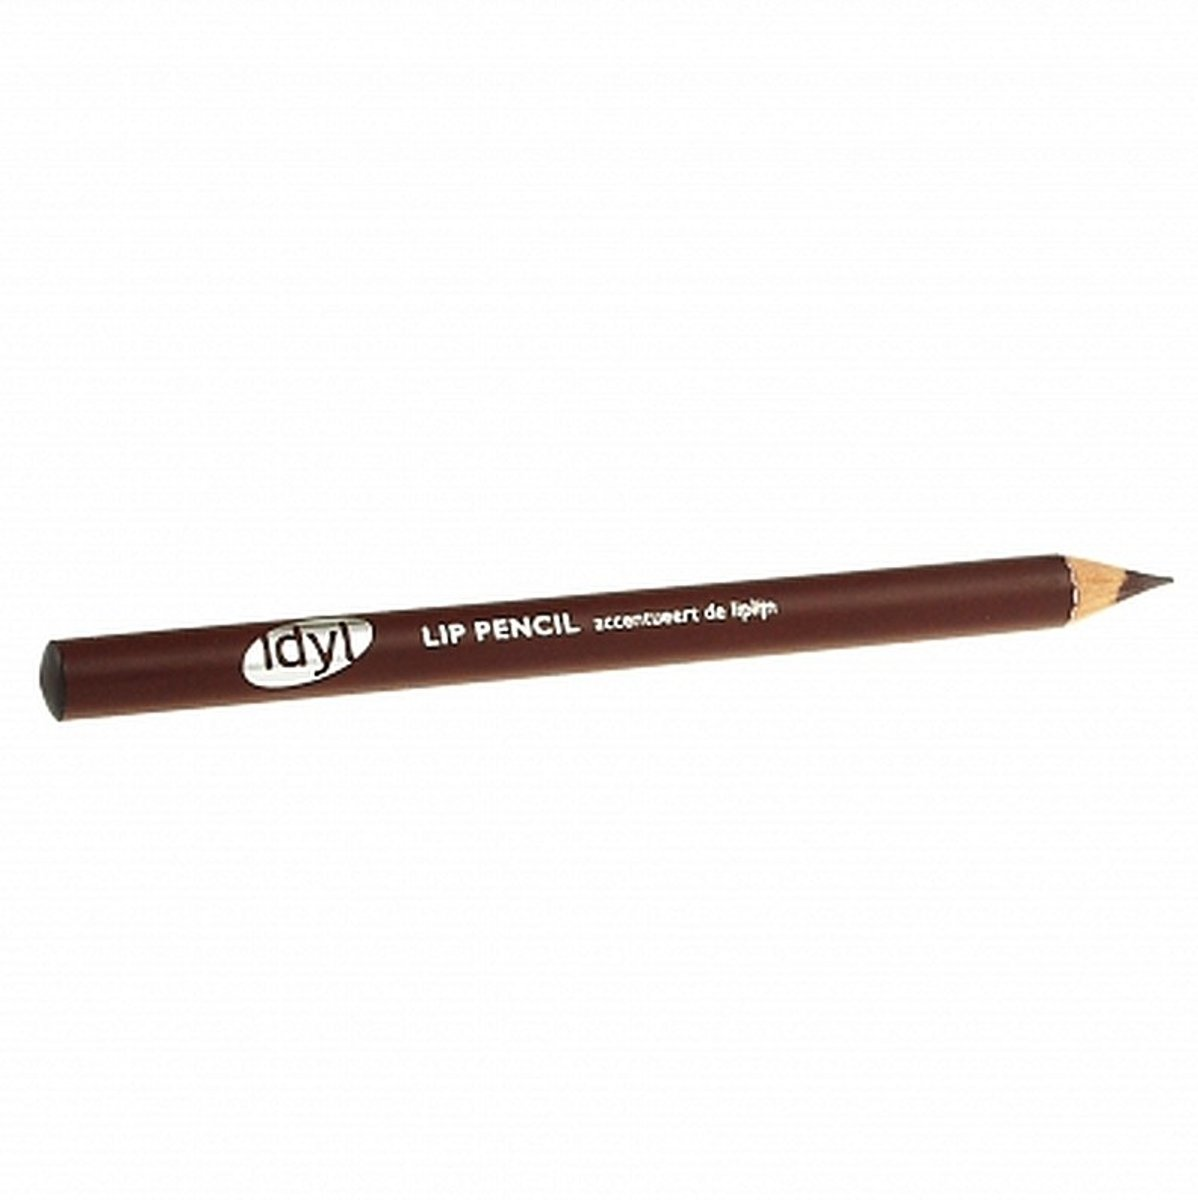 Idyl Huismerk Lip Pencil Dark Brown Clp